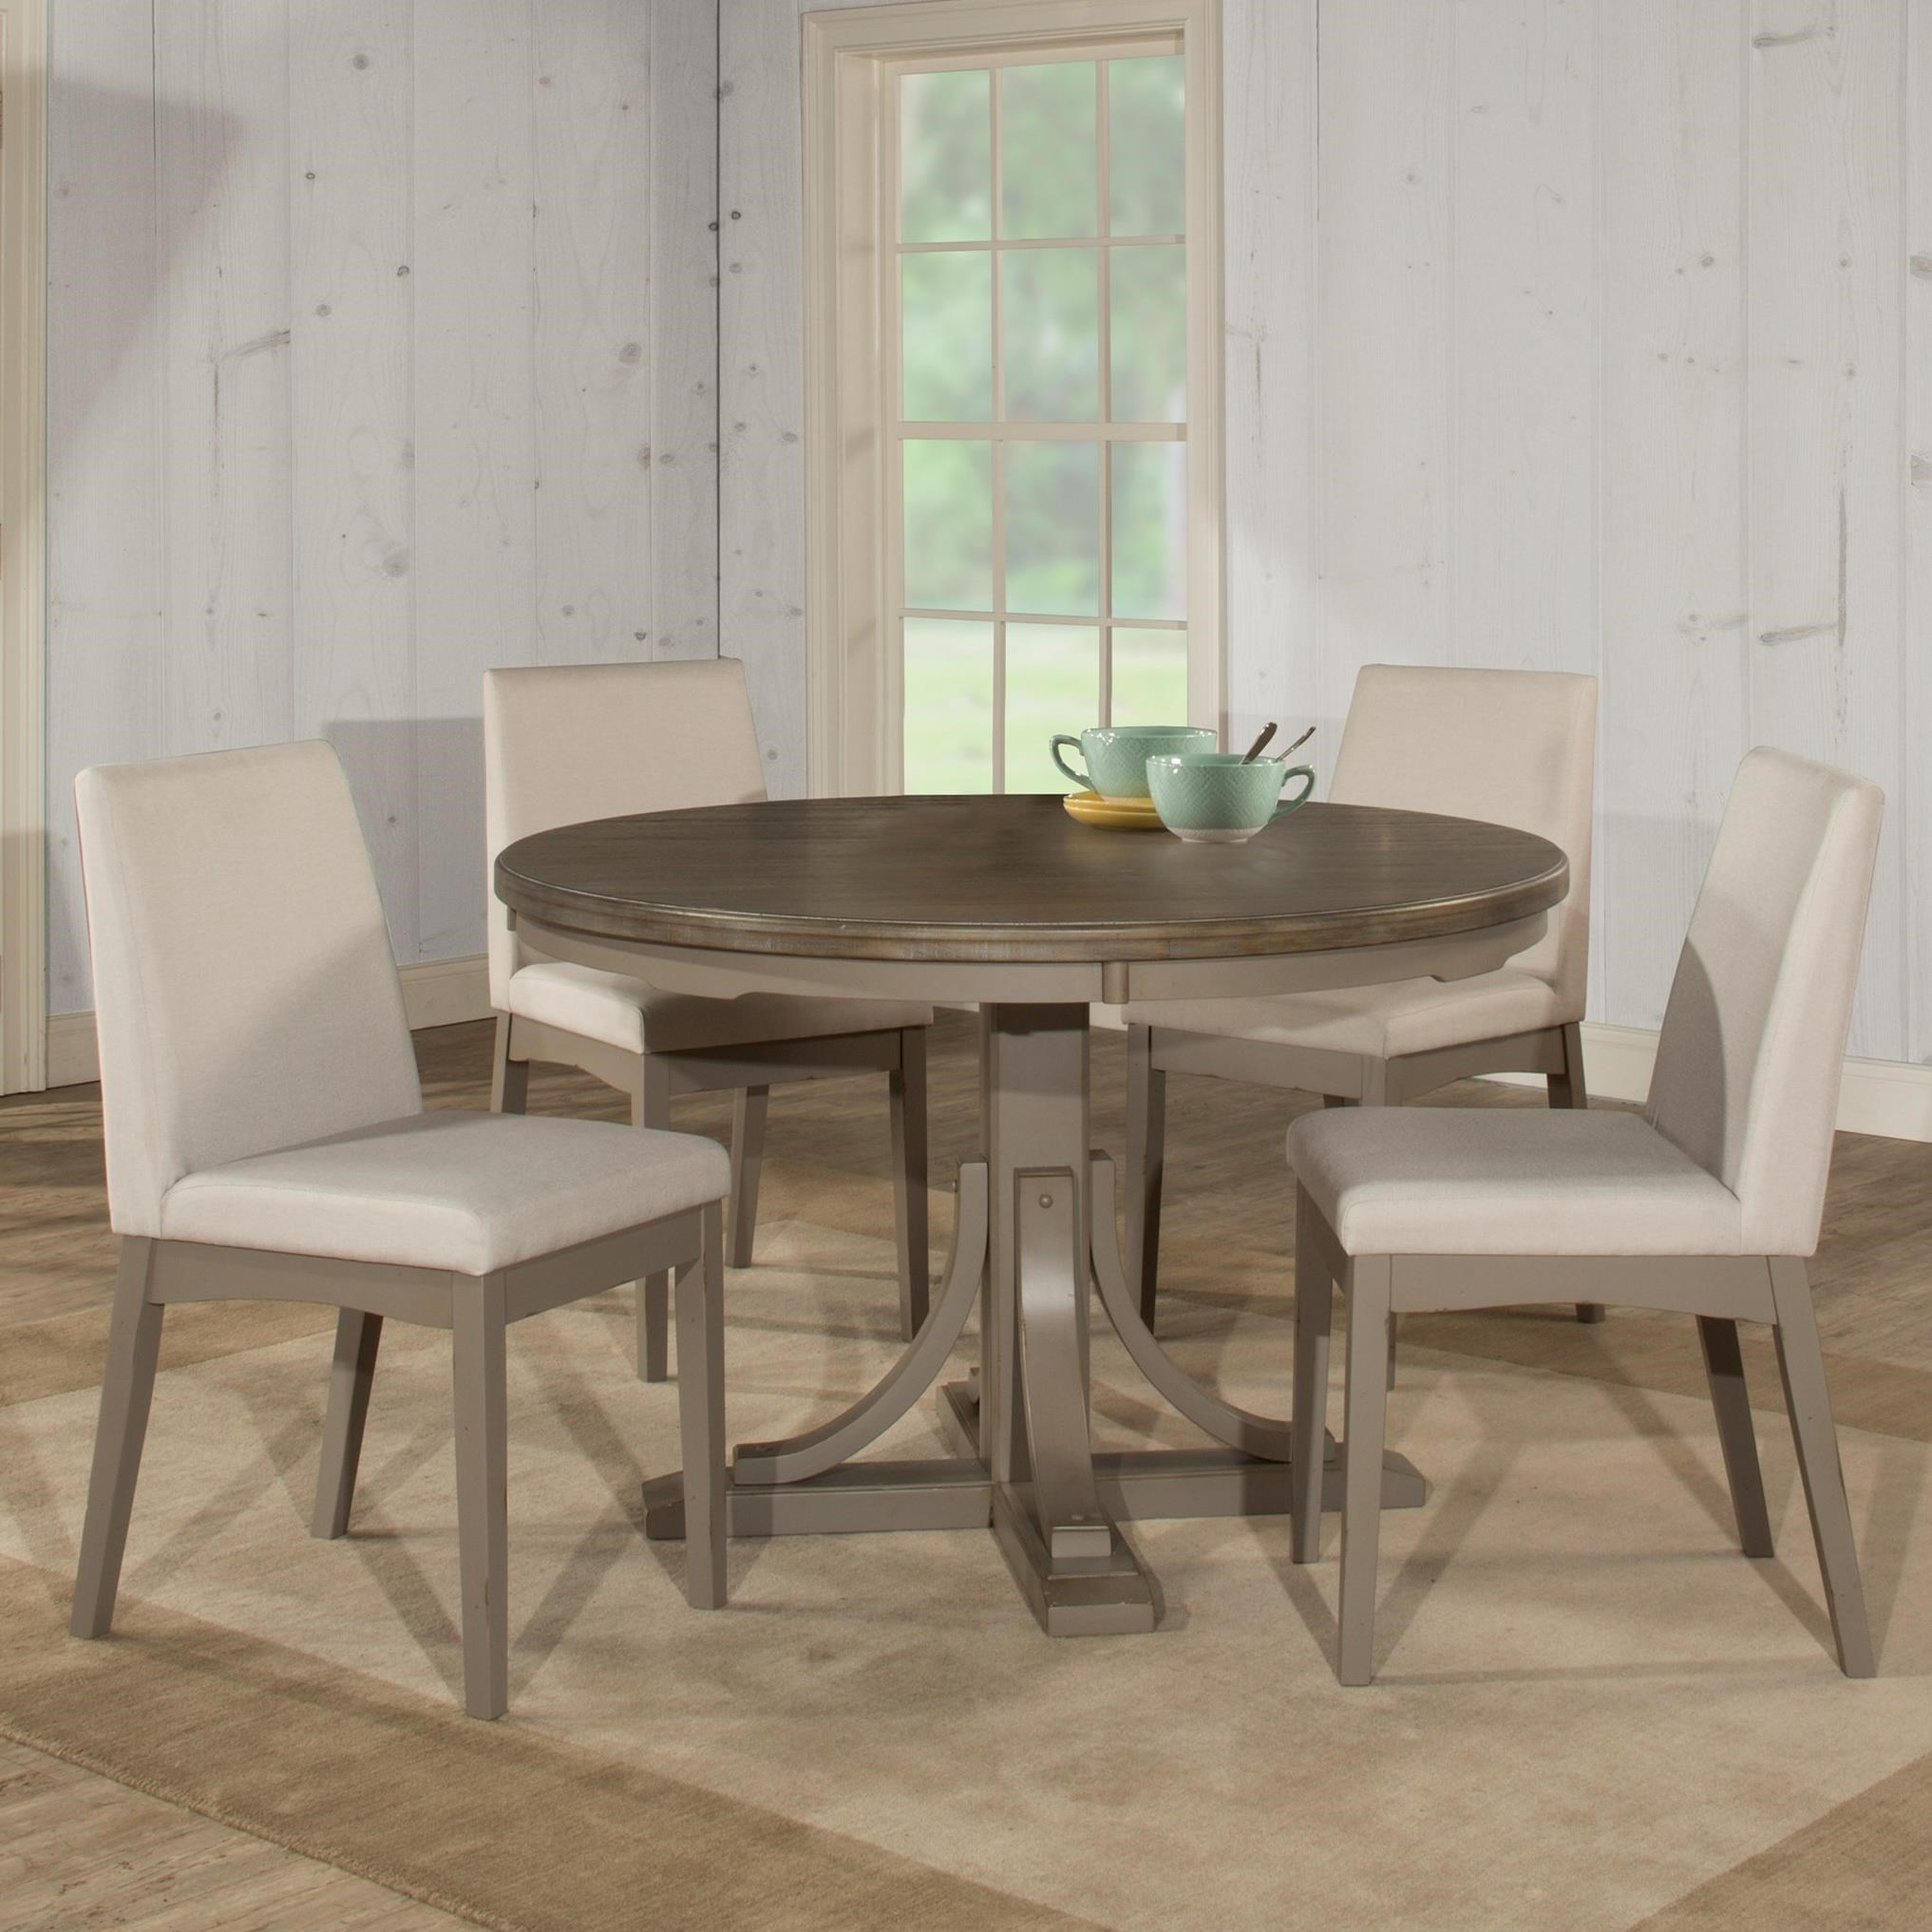 Clarion 5-Piece Dining Set by Hillsdale at SuperStore